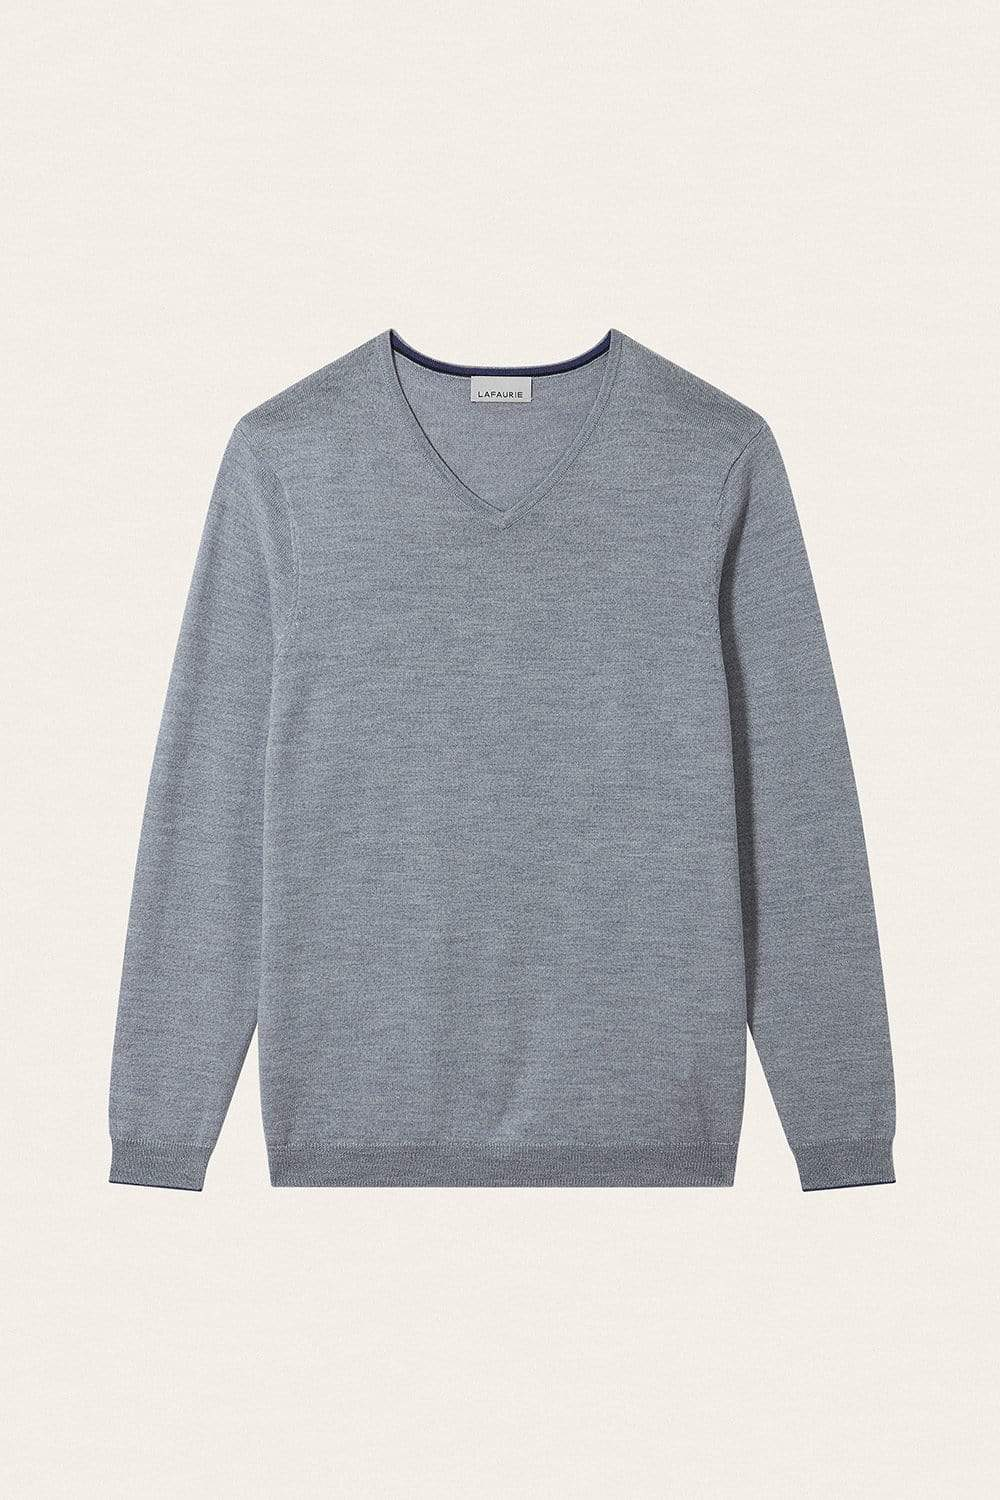 Tuck Sweater - Nuage